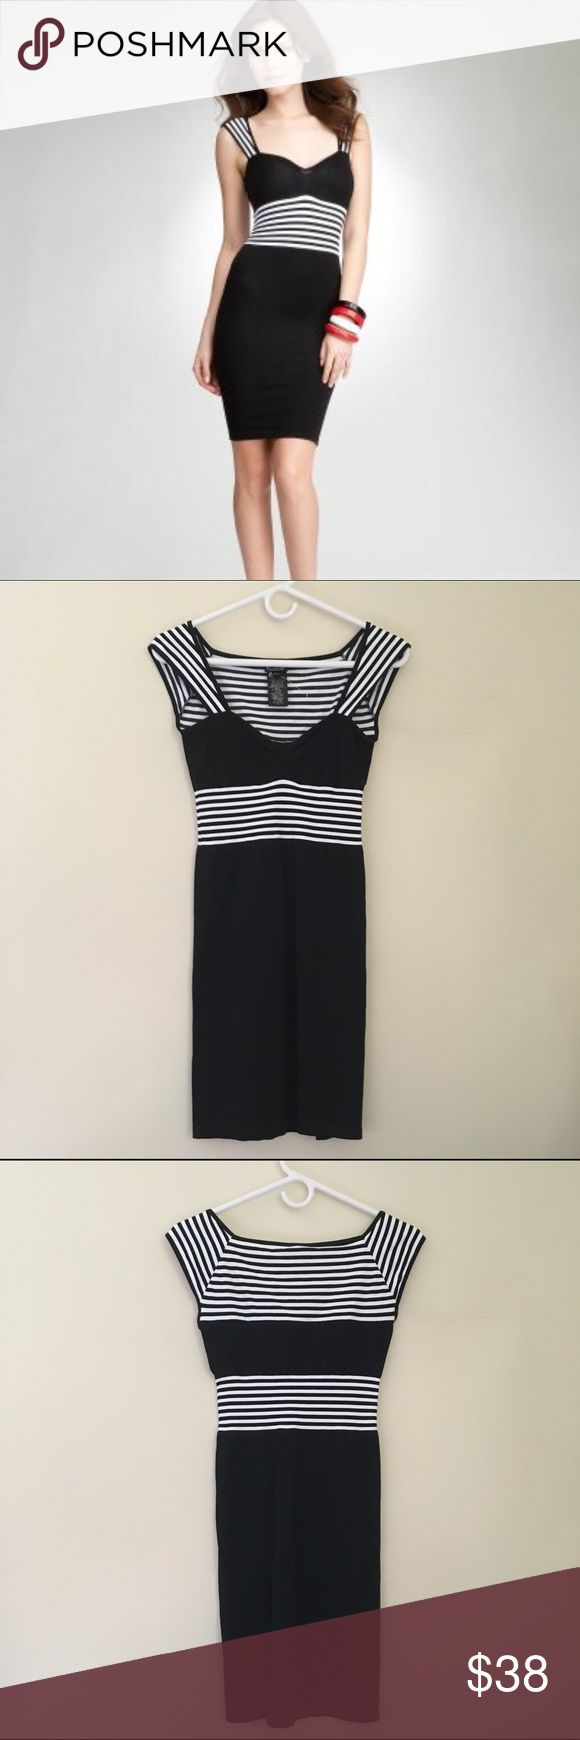 NEW Bebe Stripe Bodycon Dress M/L Brand new! Gorgeous black & white dress with striped design from bebe. The price tag was removed but it doesn't fit me and was never worn. Size M/L. Bodycon style, it is stretchy so it fits a range. It has a sailor nautical vibe to it. So cute and flattering! Original price over $60. If you have any questions let me know :) I don't trade at this time, sorry! I ship out next day ❤️ bebe Dresses Mini